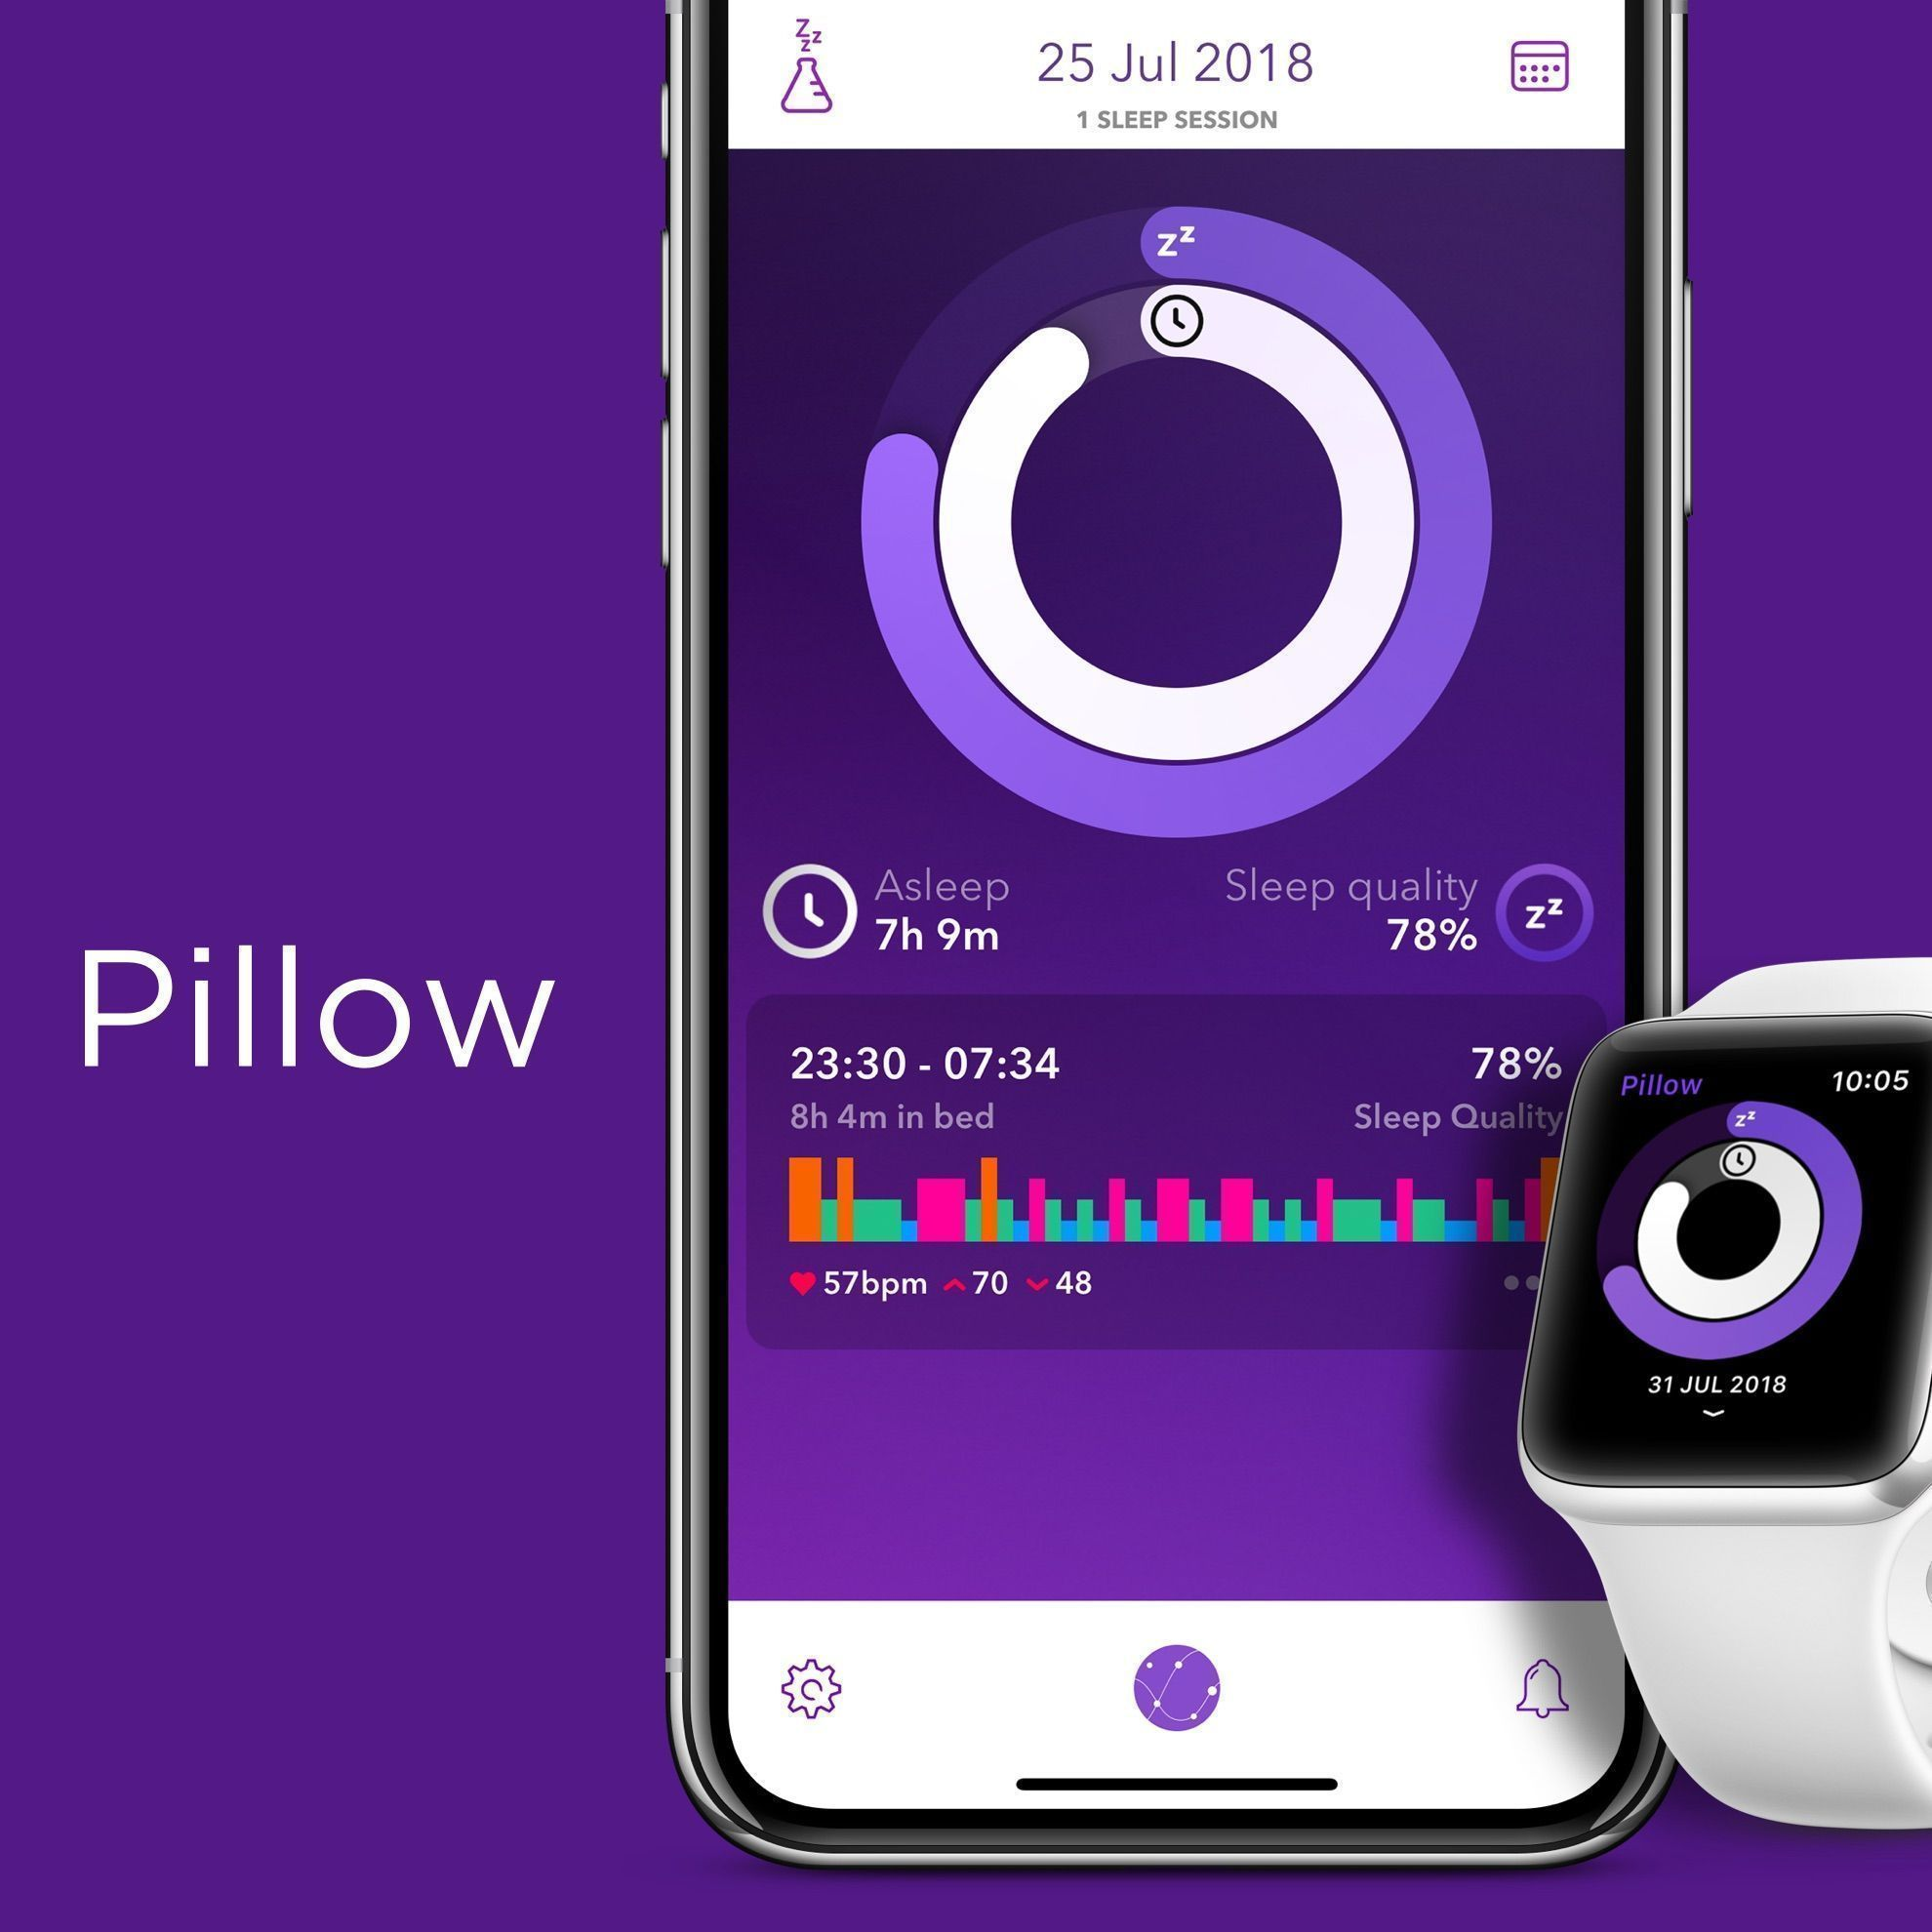 Pillow can now track your sleep automatically. Just wear